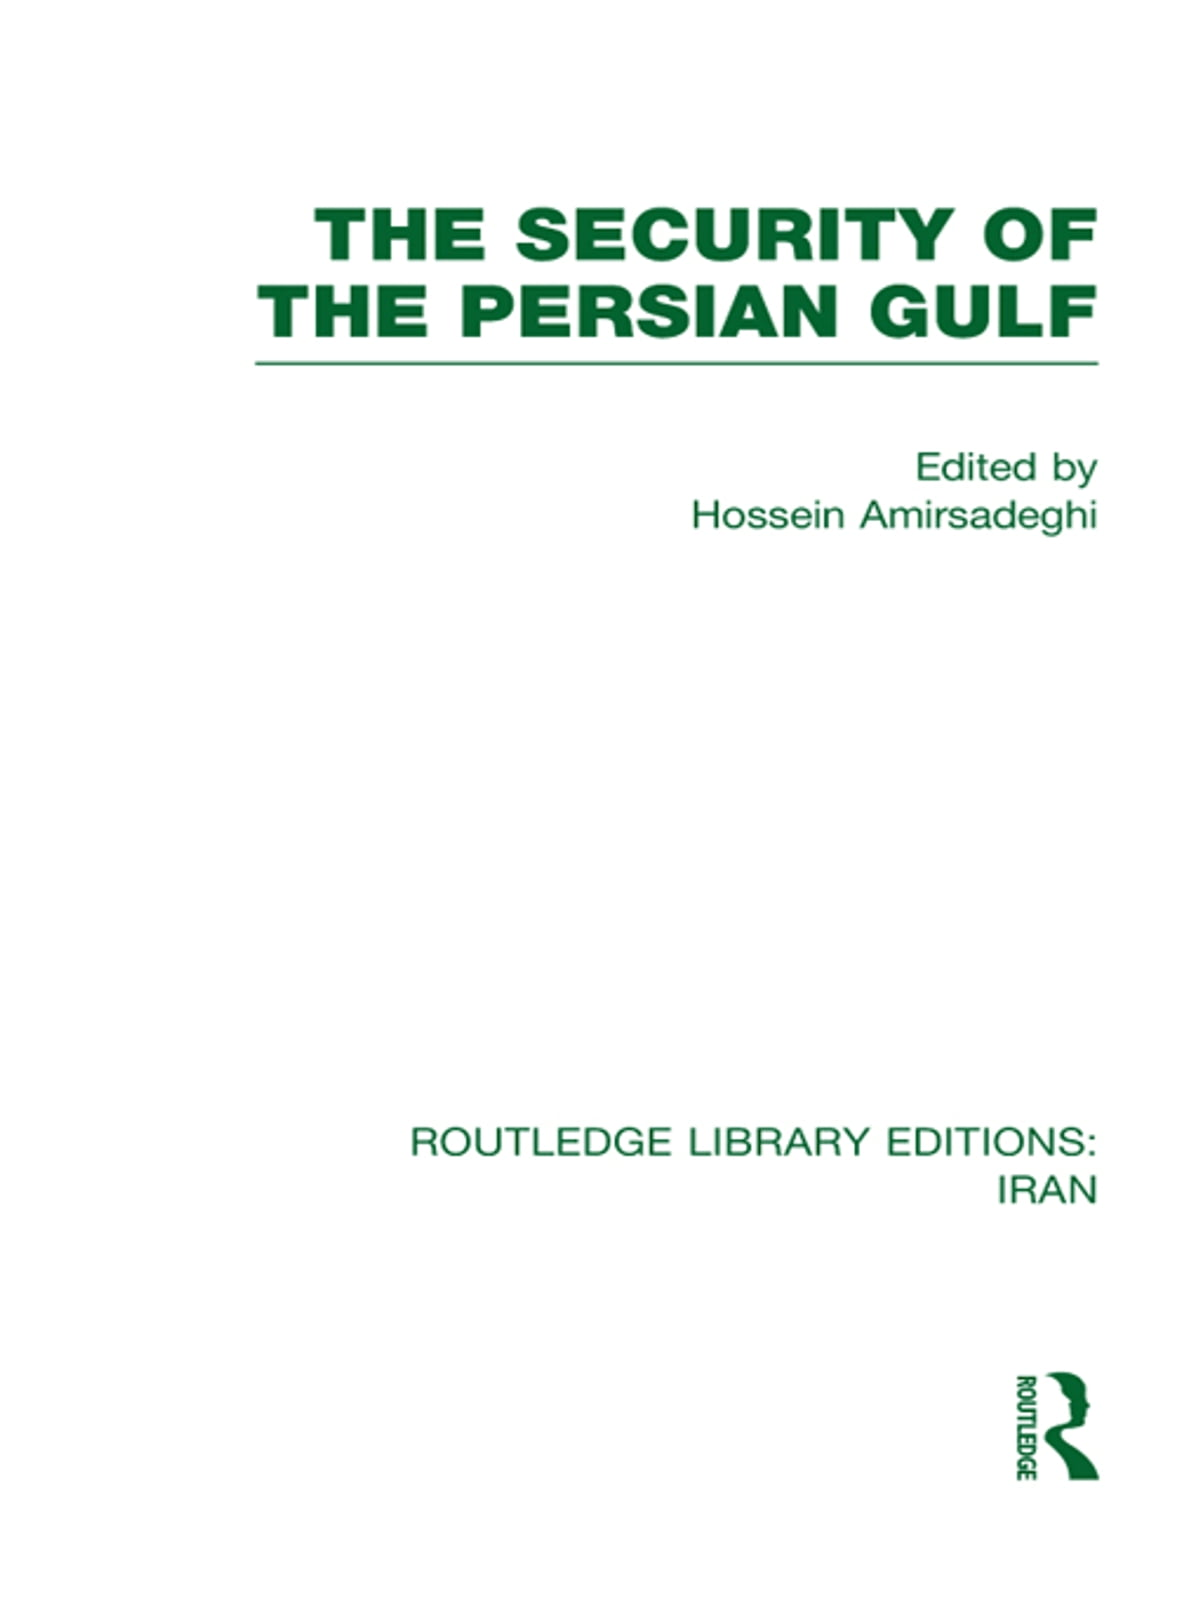 Persia and its People (RLE Iran A) (Routledge Library Editions: Iran)